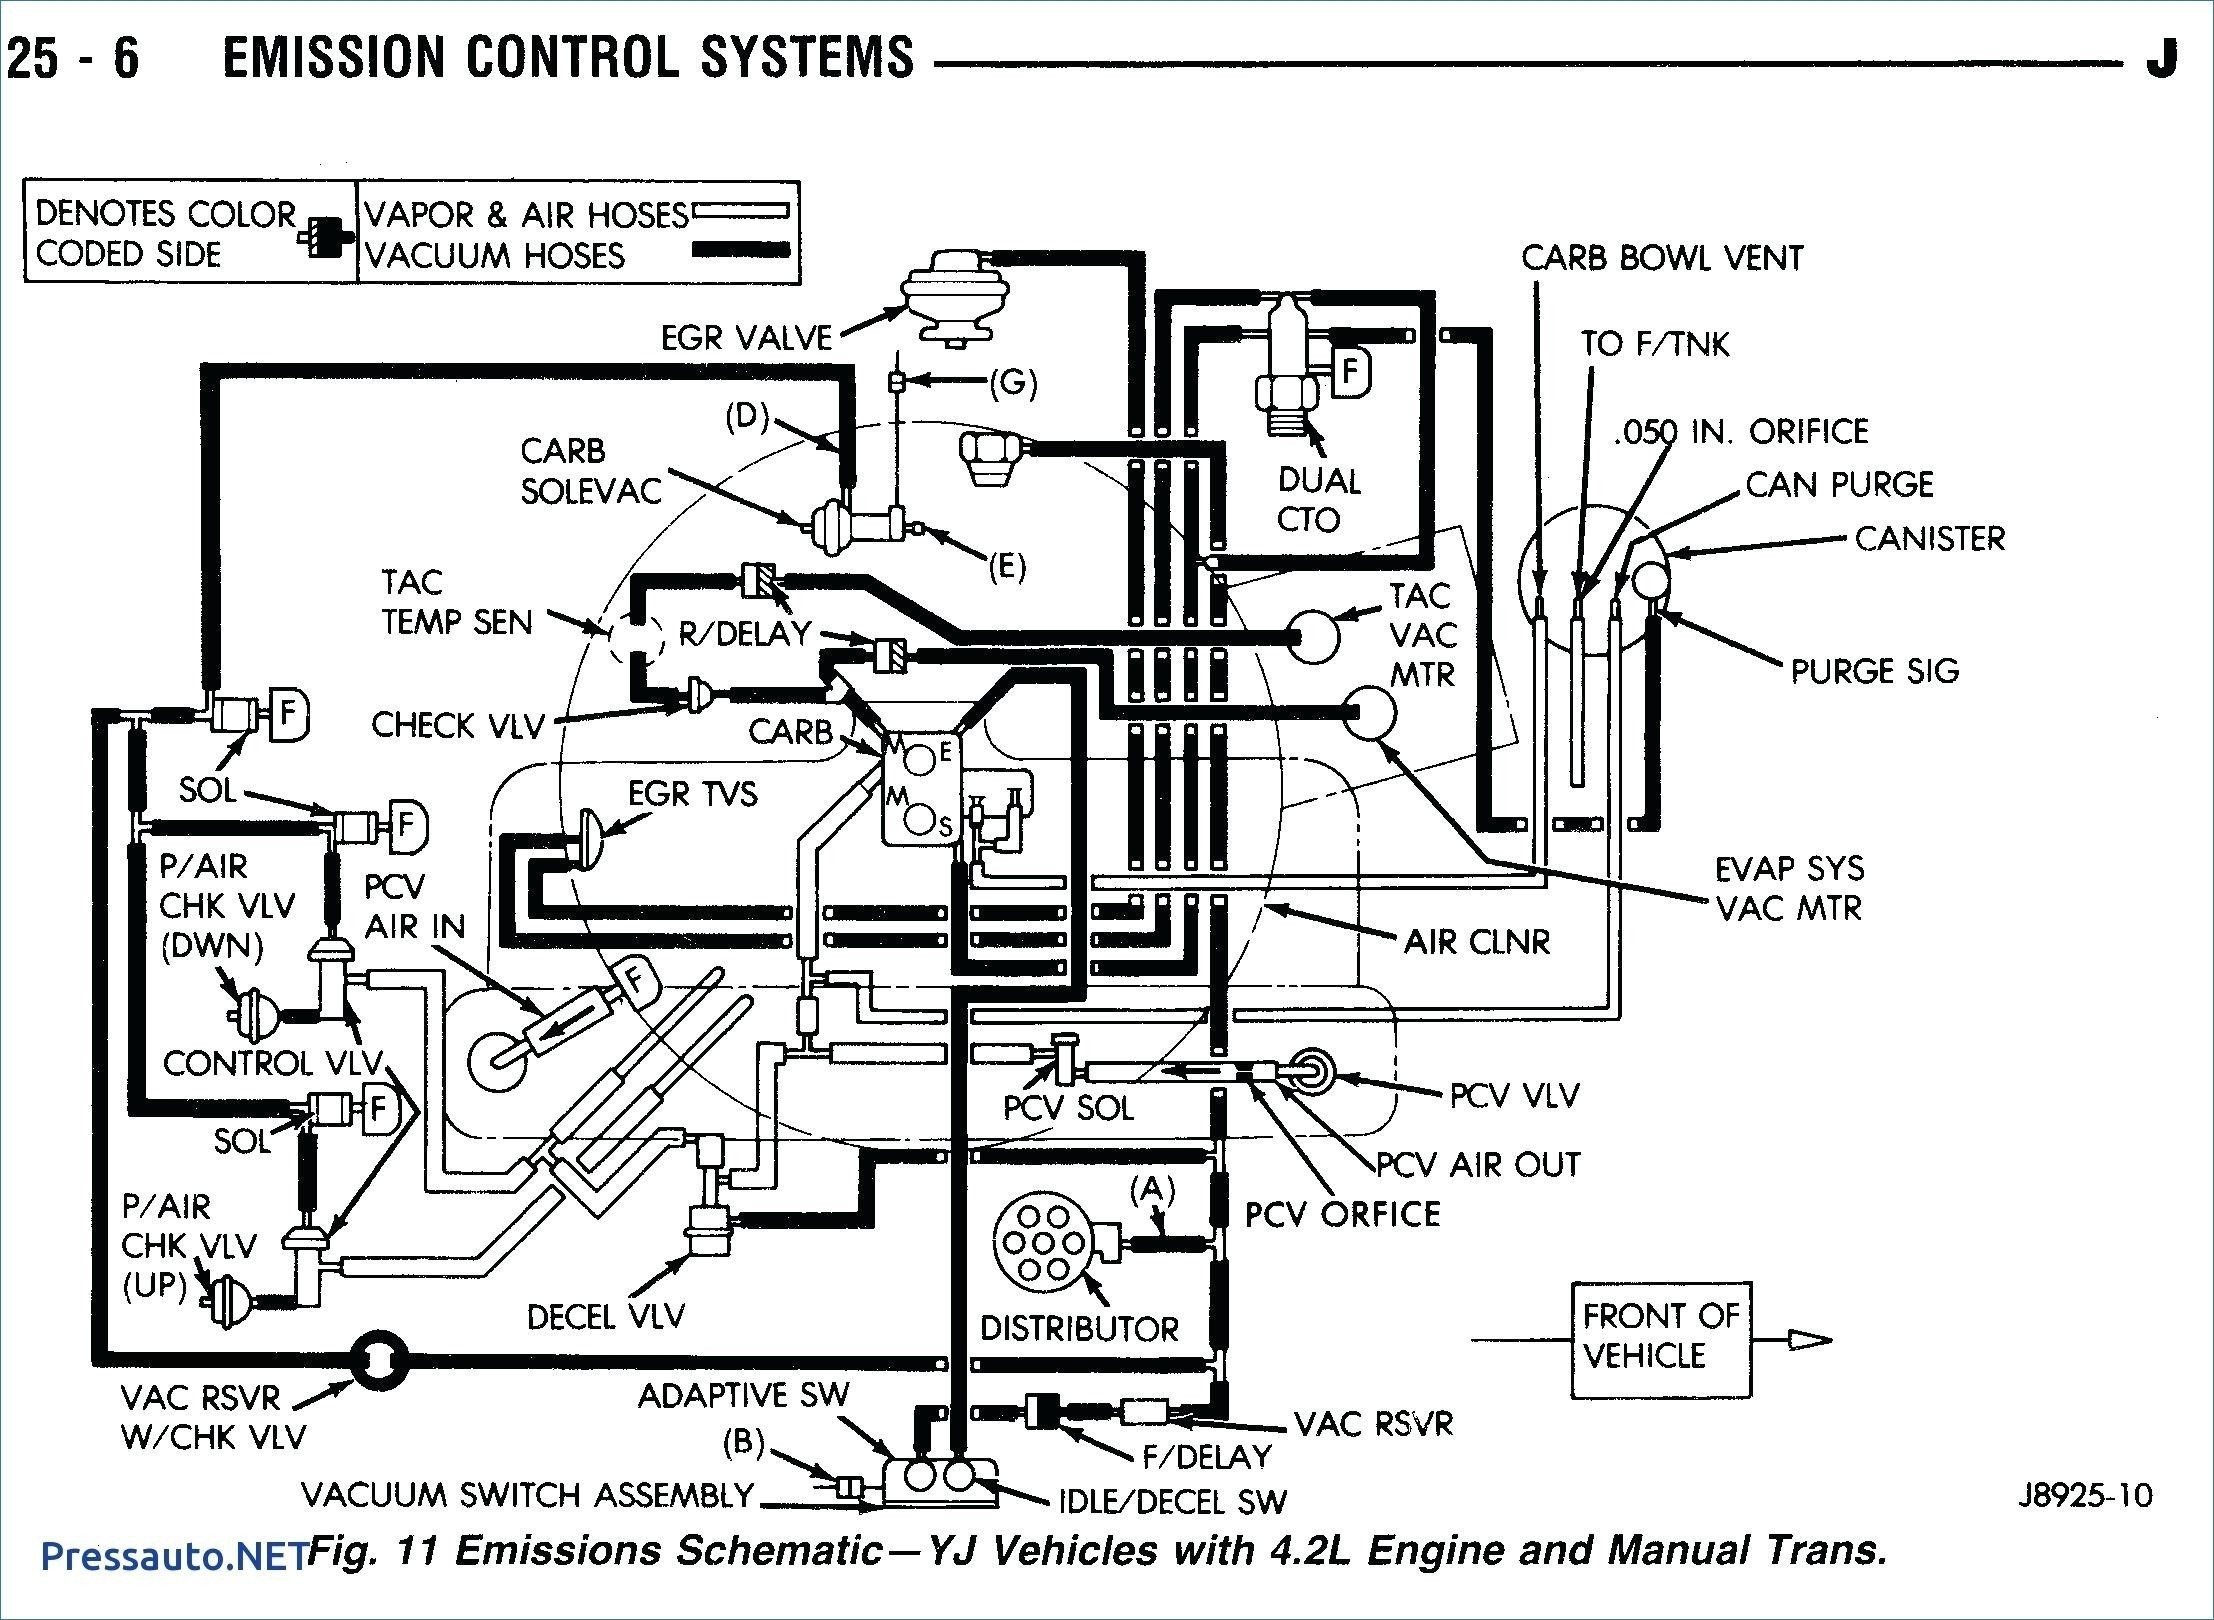 88 Jeep Yj Wiring Diagram - Auto Electrical Wiring Diagram  Jeep Wrangler Engine Wiring Diagram on